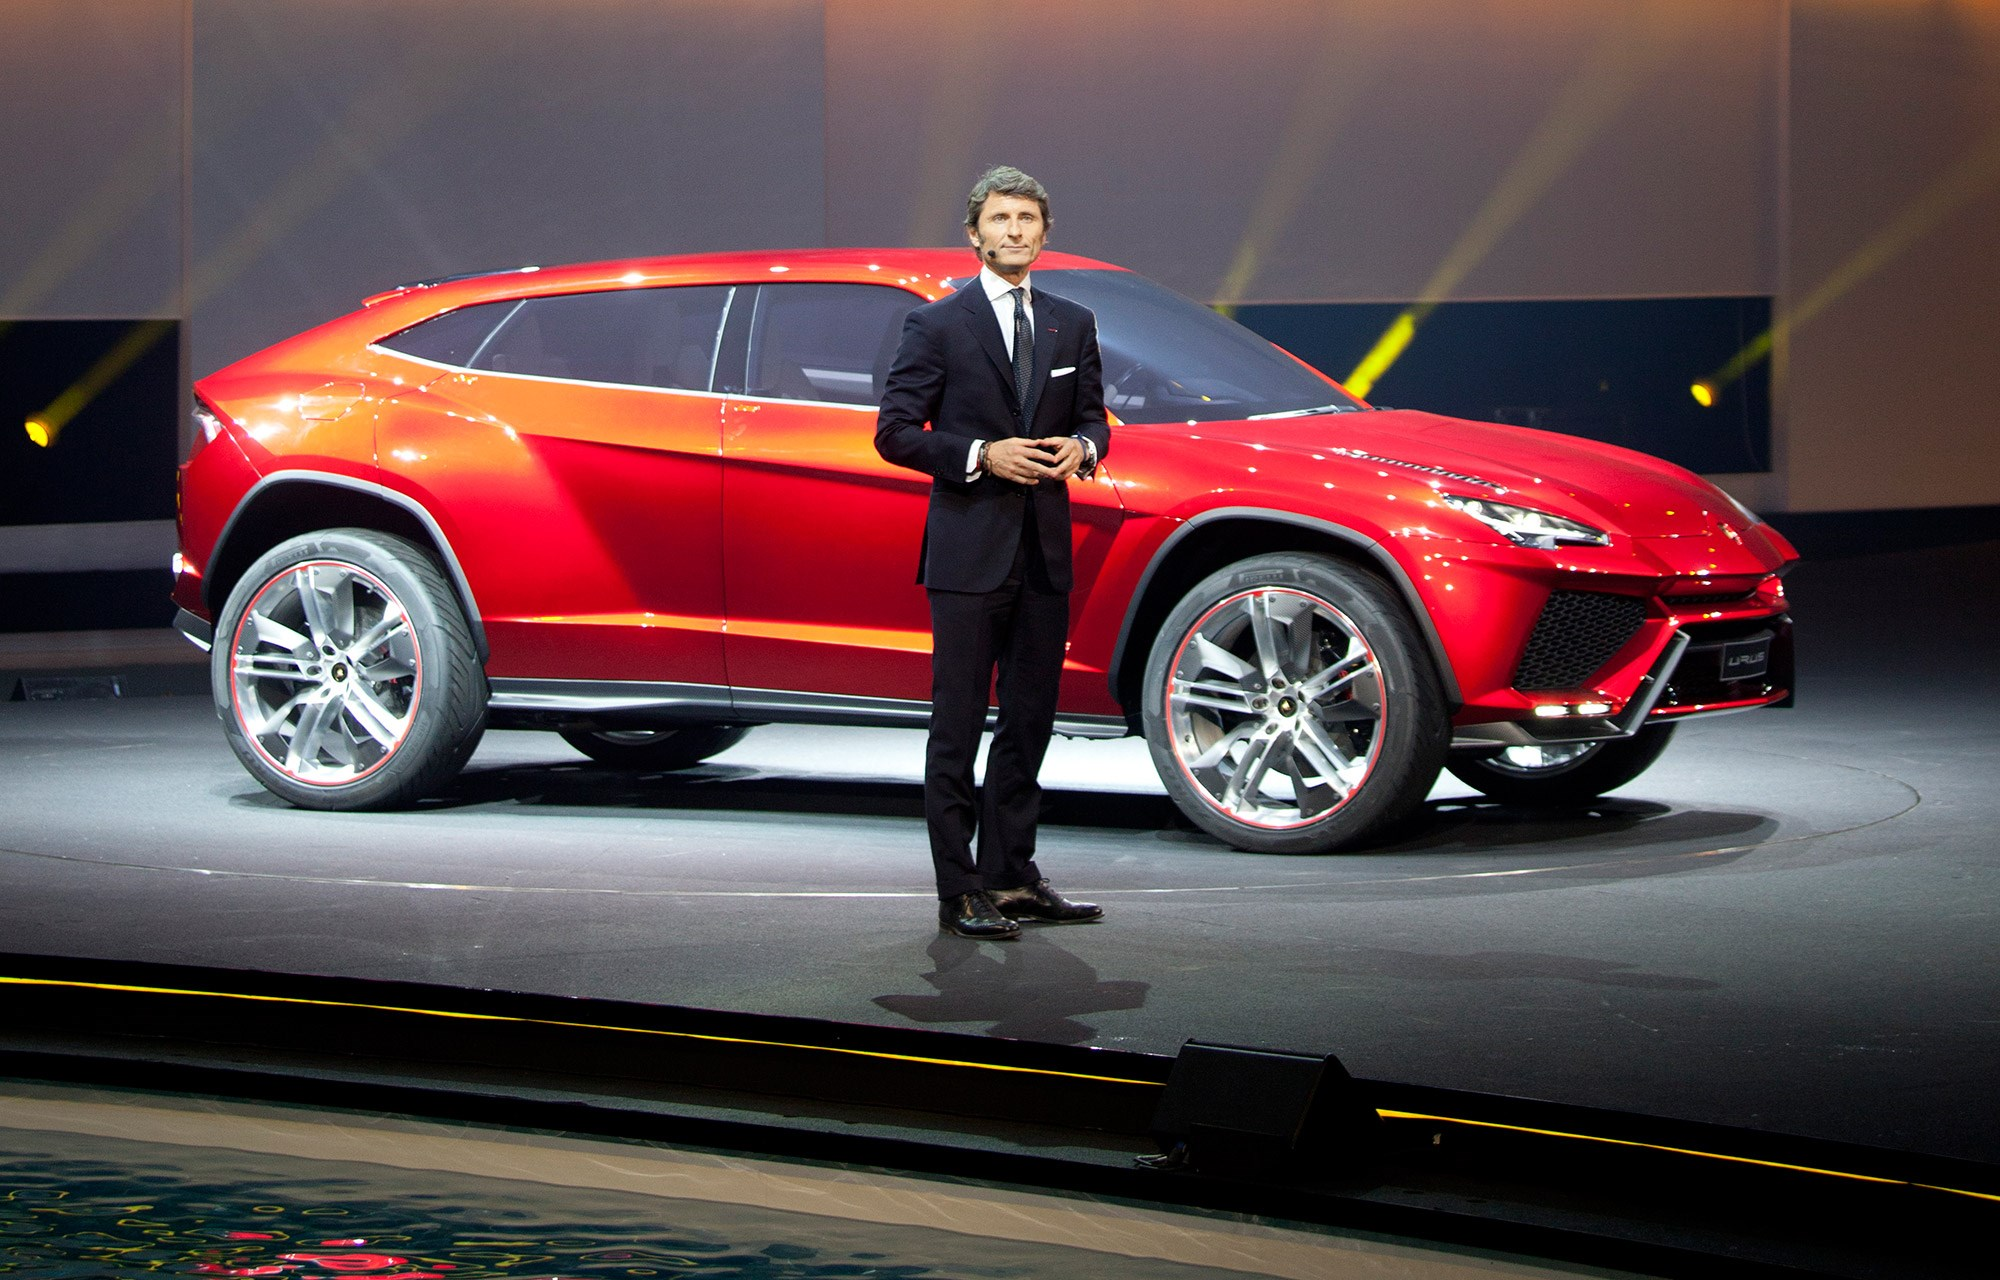 Lambo Chief Exec Stephan Winkelmann And The Urus SUV